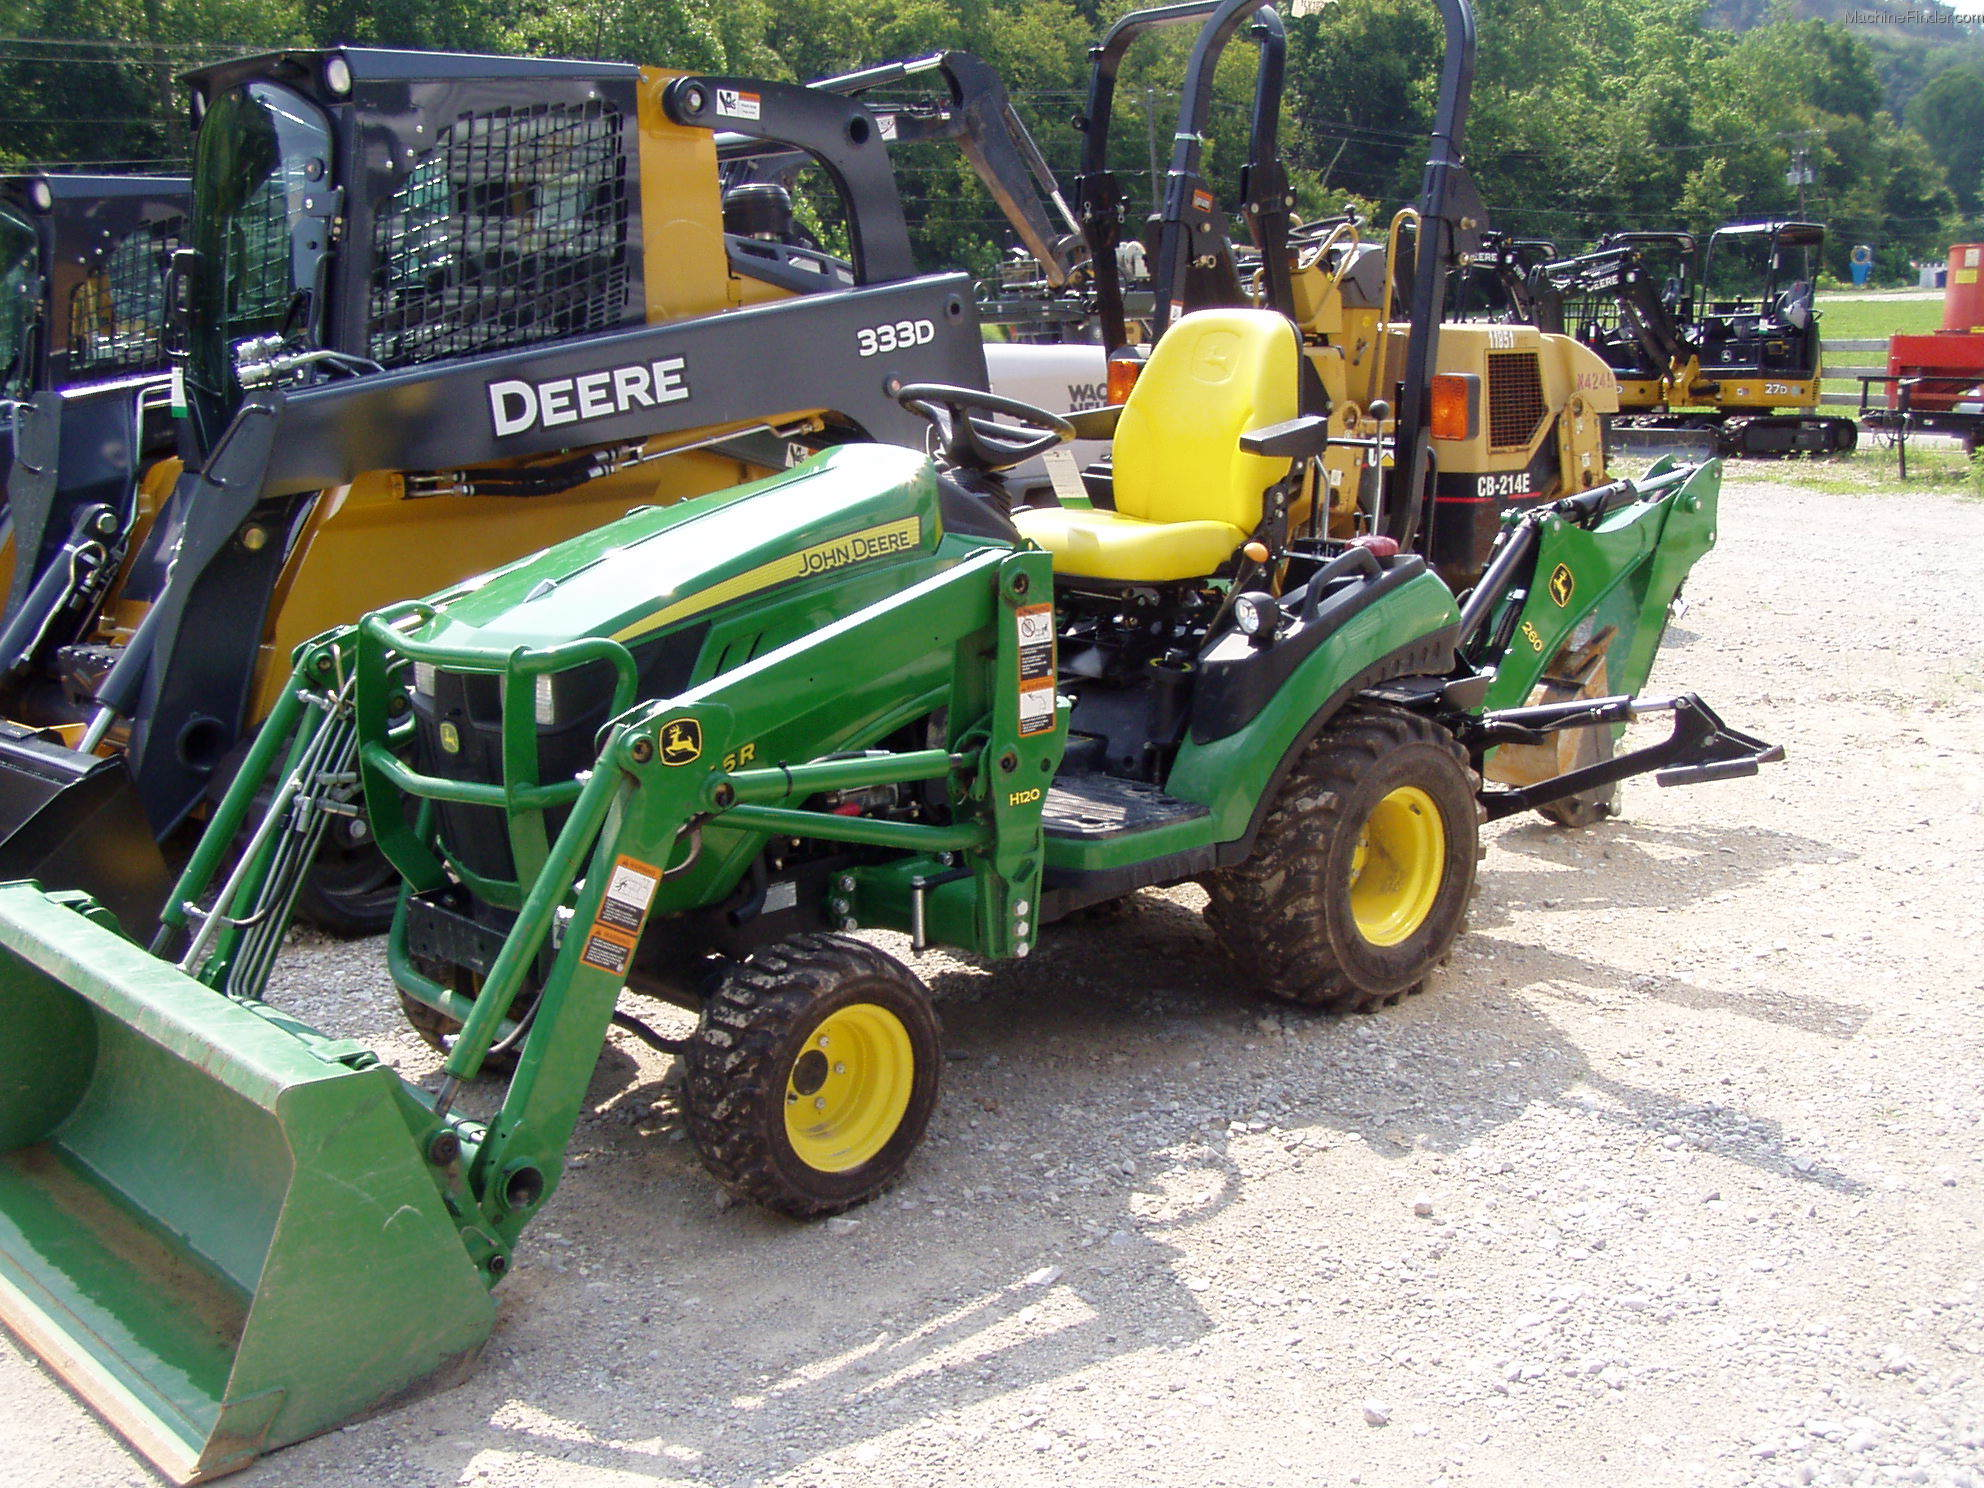 John Deere 1026r Attachments : Tweet